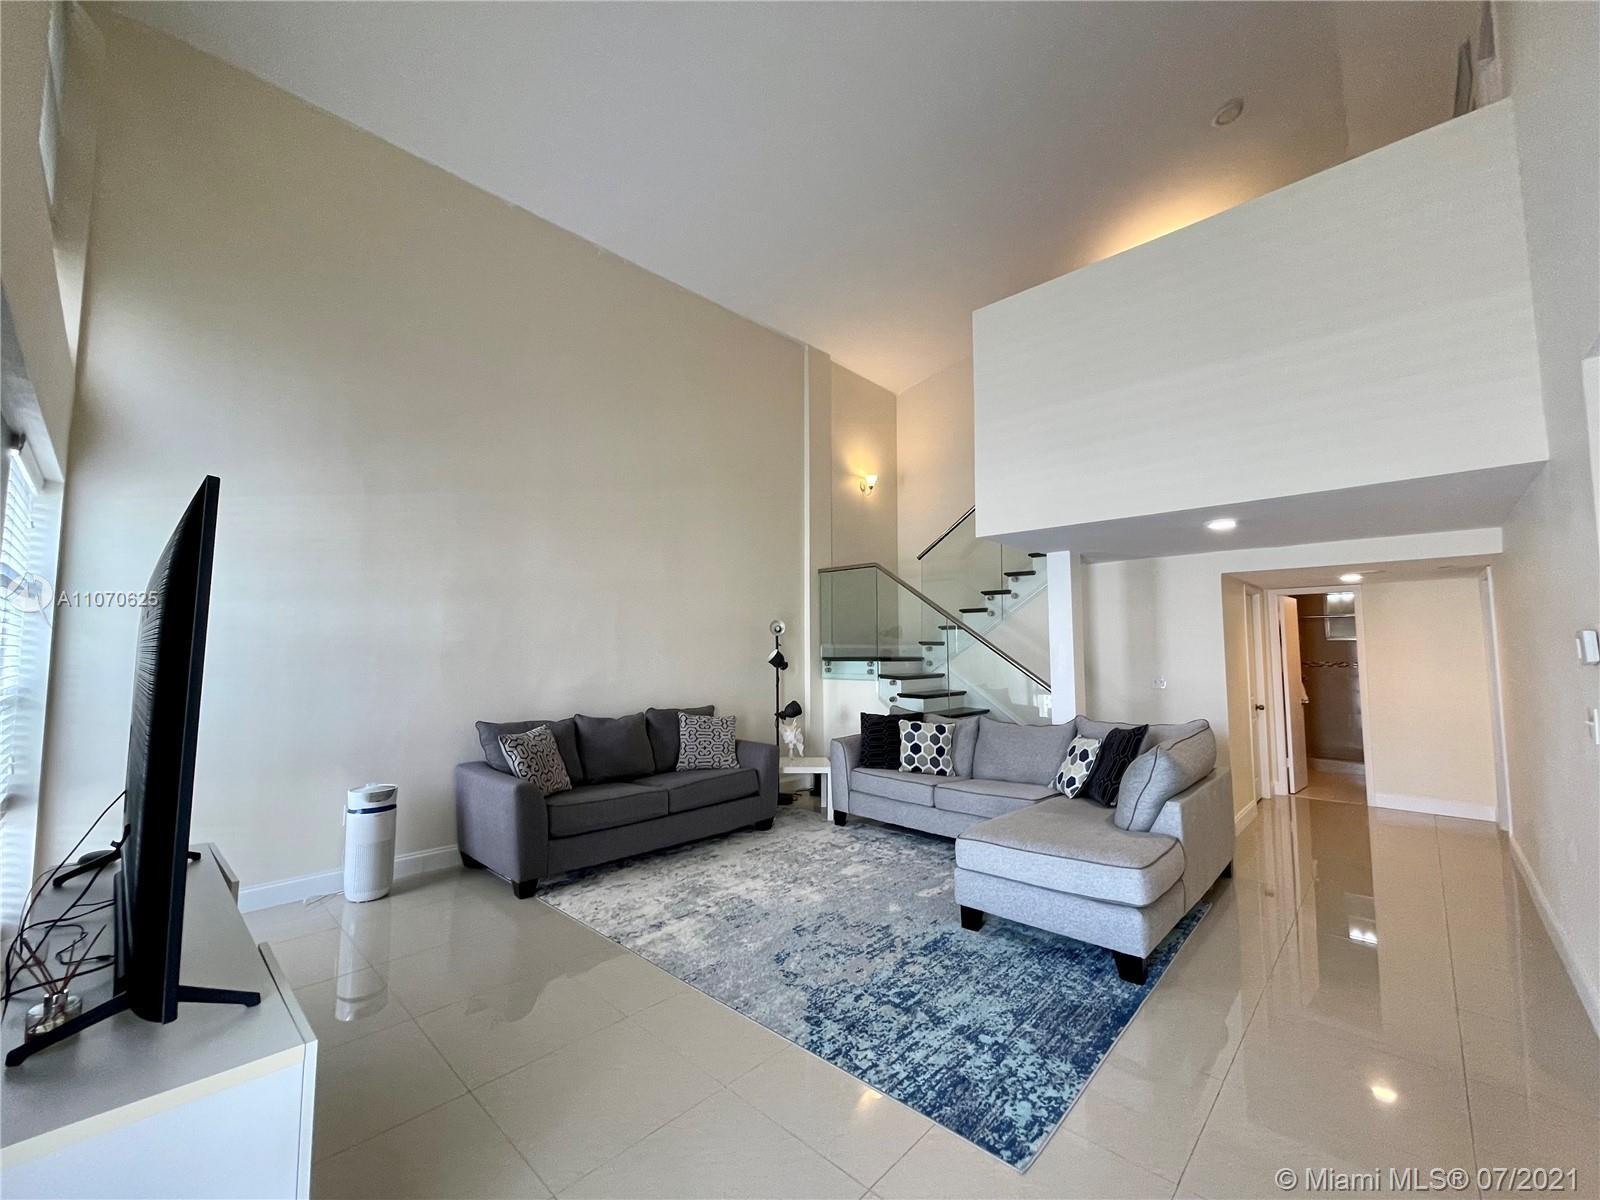 Immaculate, completely upgraded, modern townhome in the heart of Aventura, w/ breathtaking views of